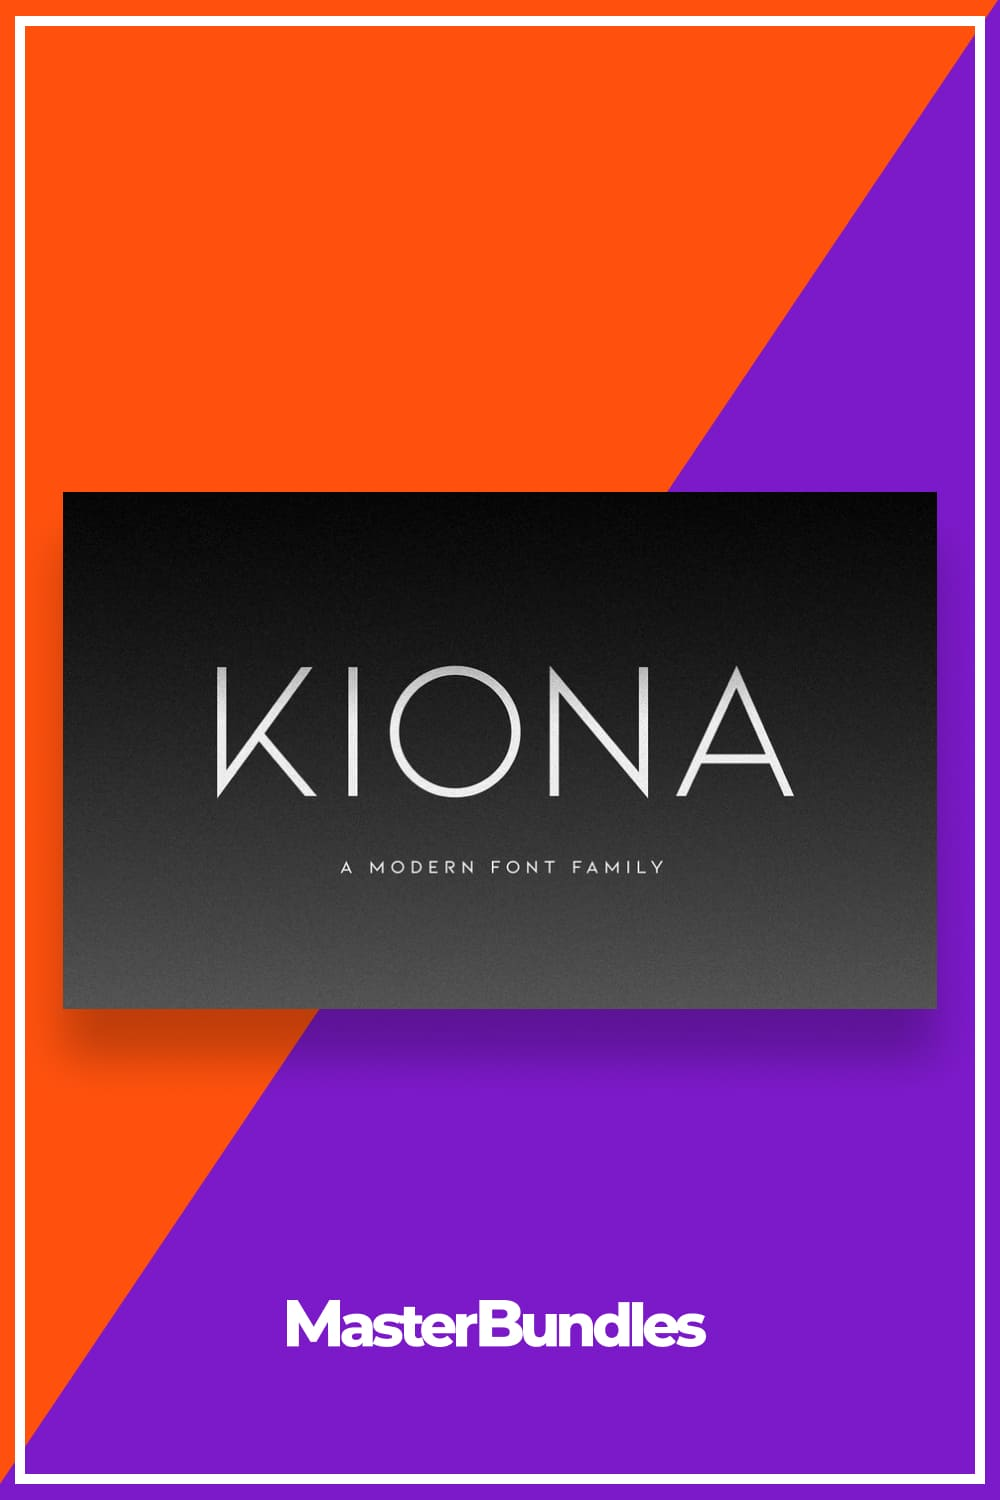 Kiona is simple but significant, and defined by its crisp edges and modern touches.